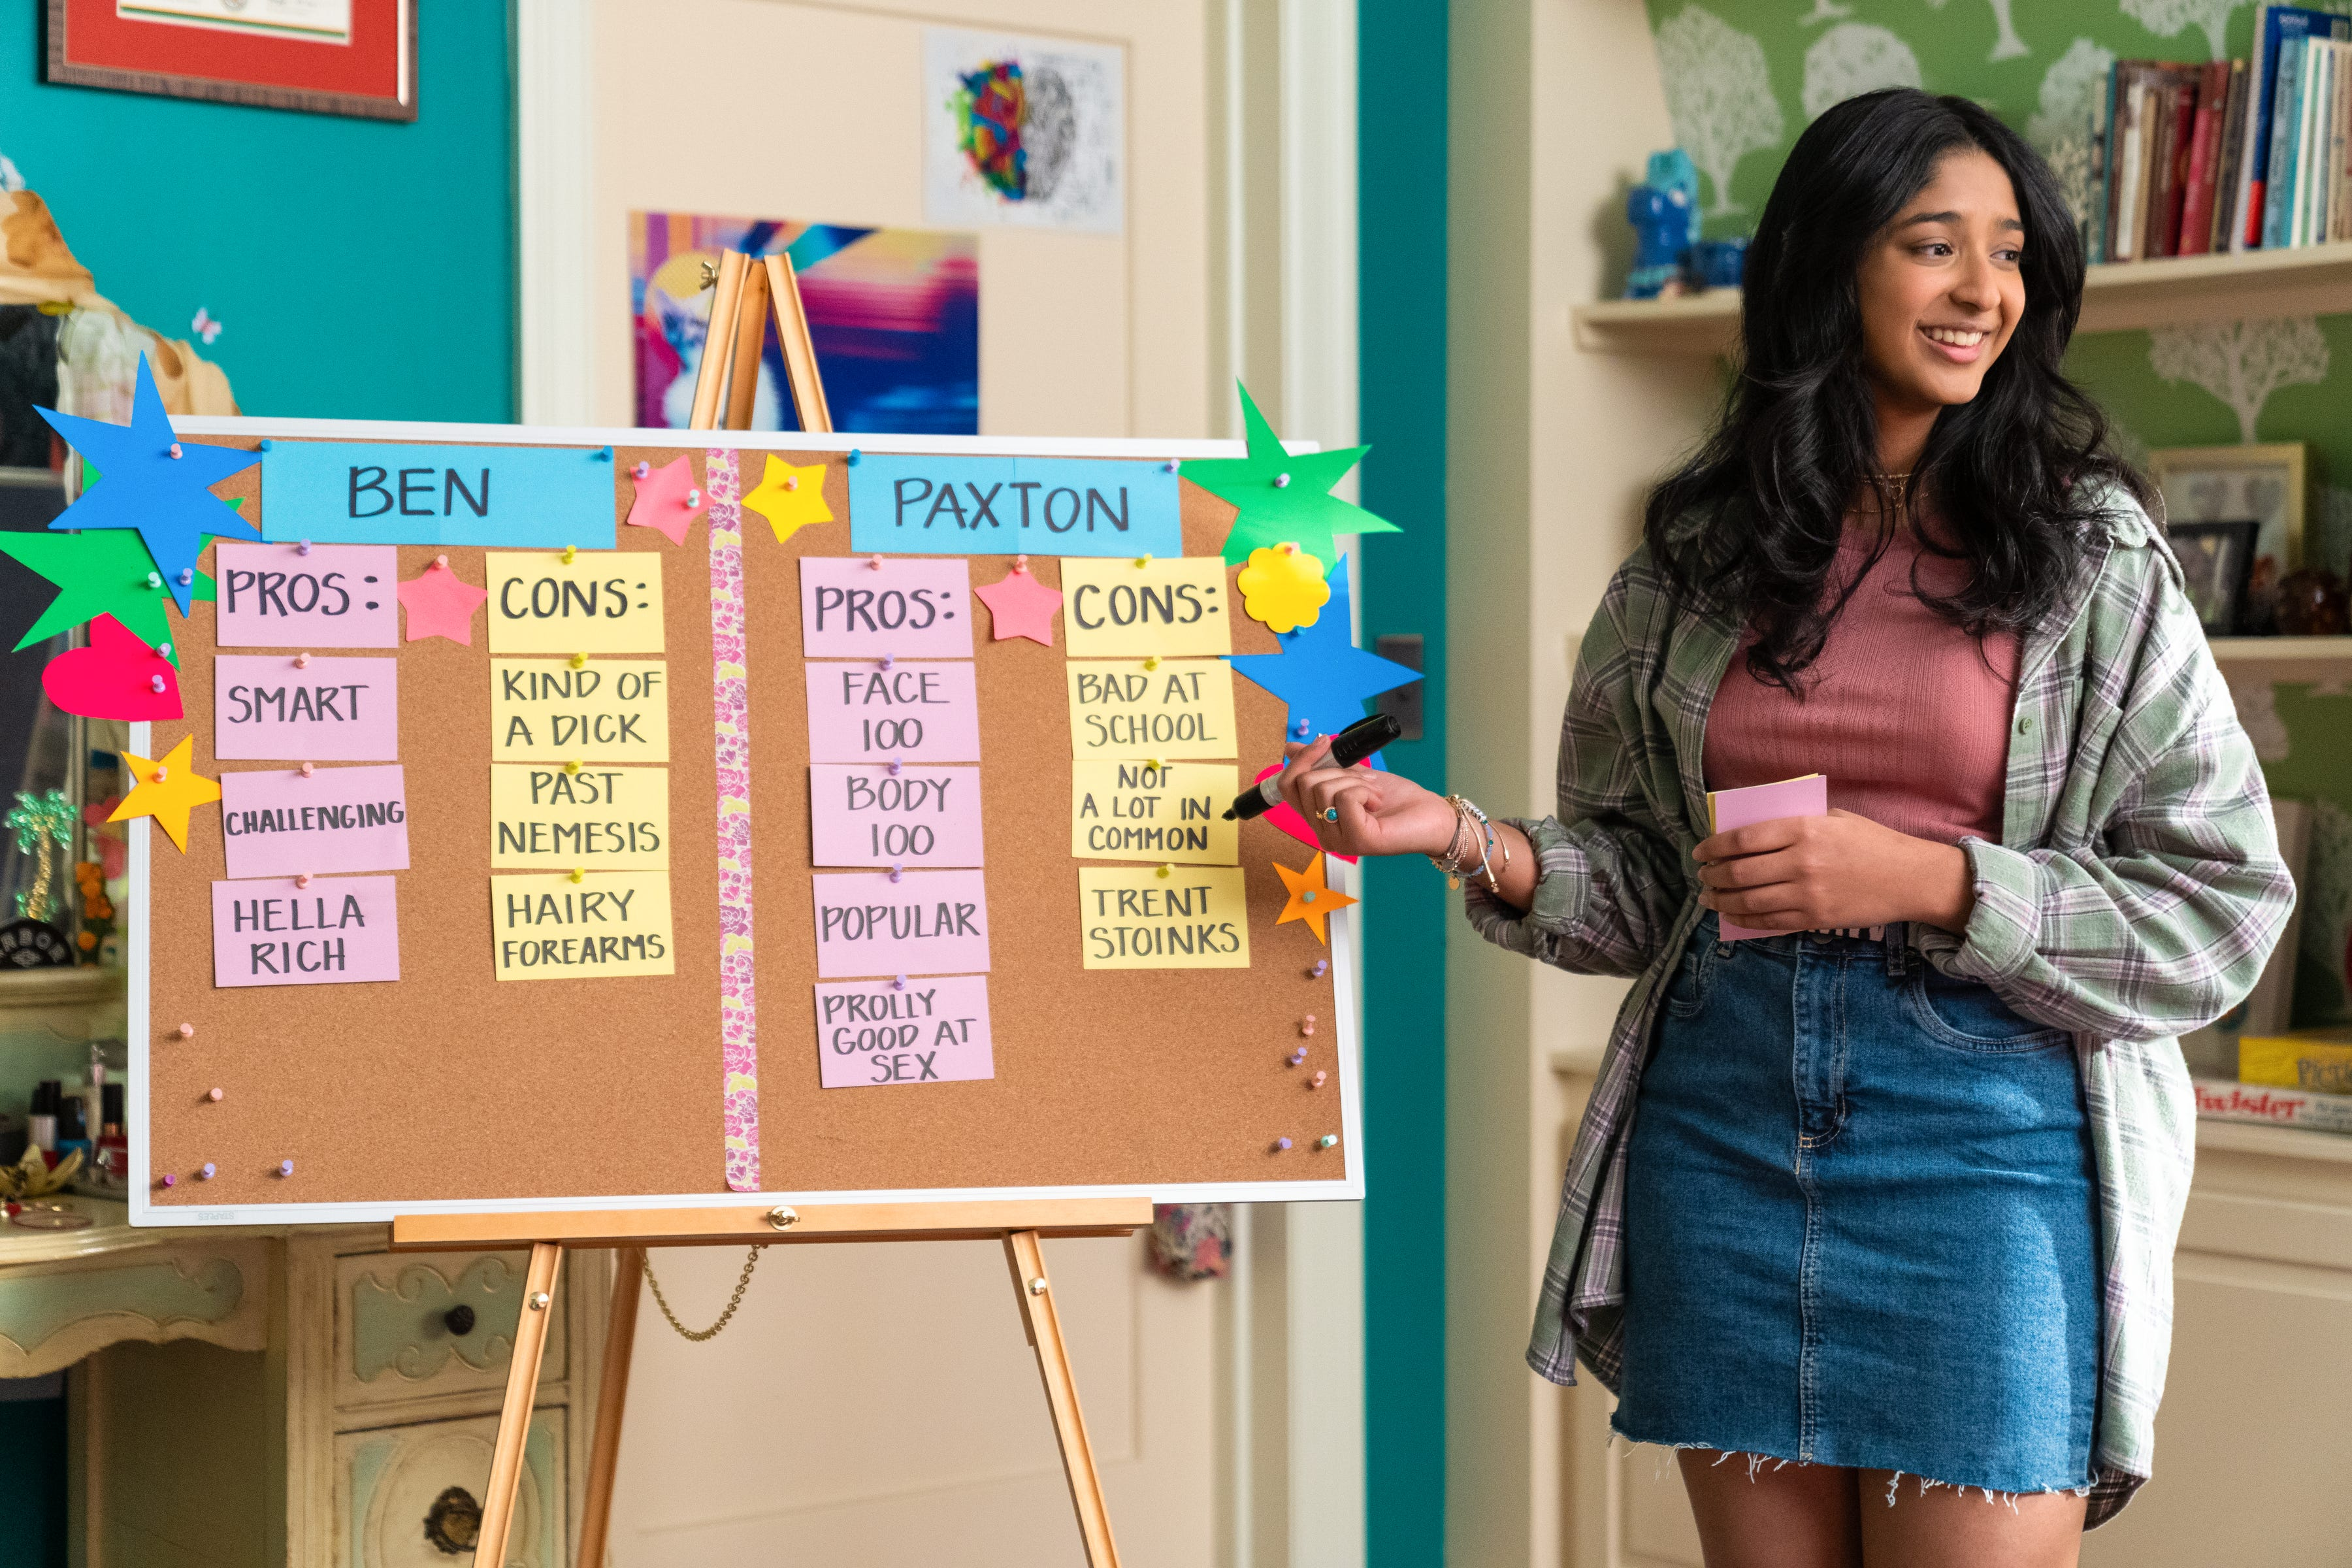 2021 TV premiere dates, from 'Young Sheldon' to 'You' and 'Dancing with the Stars'